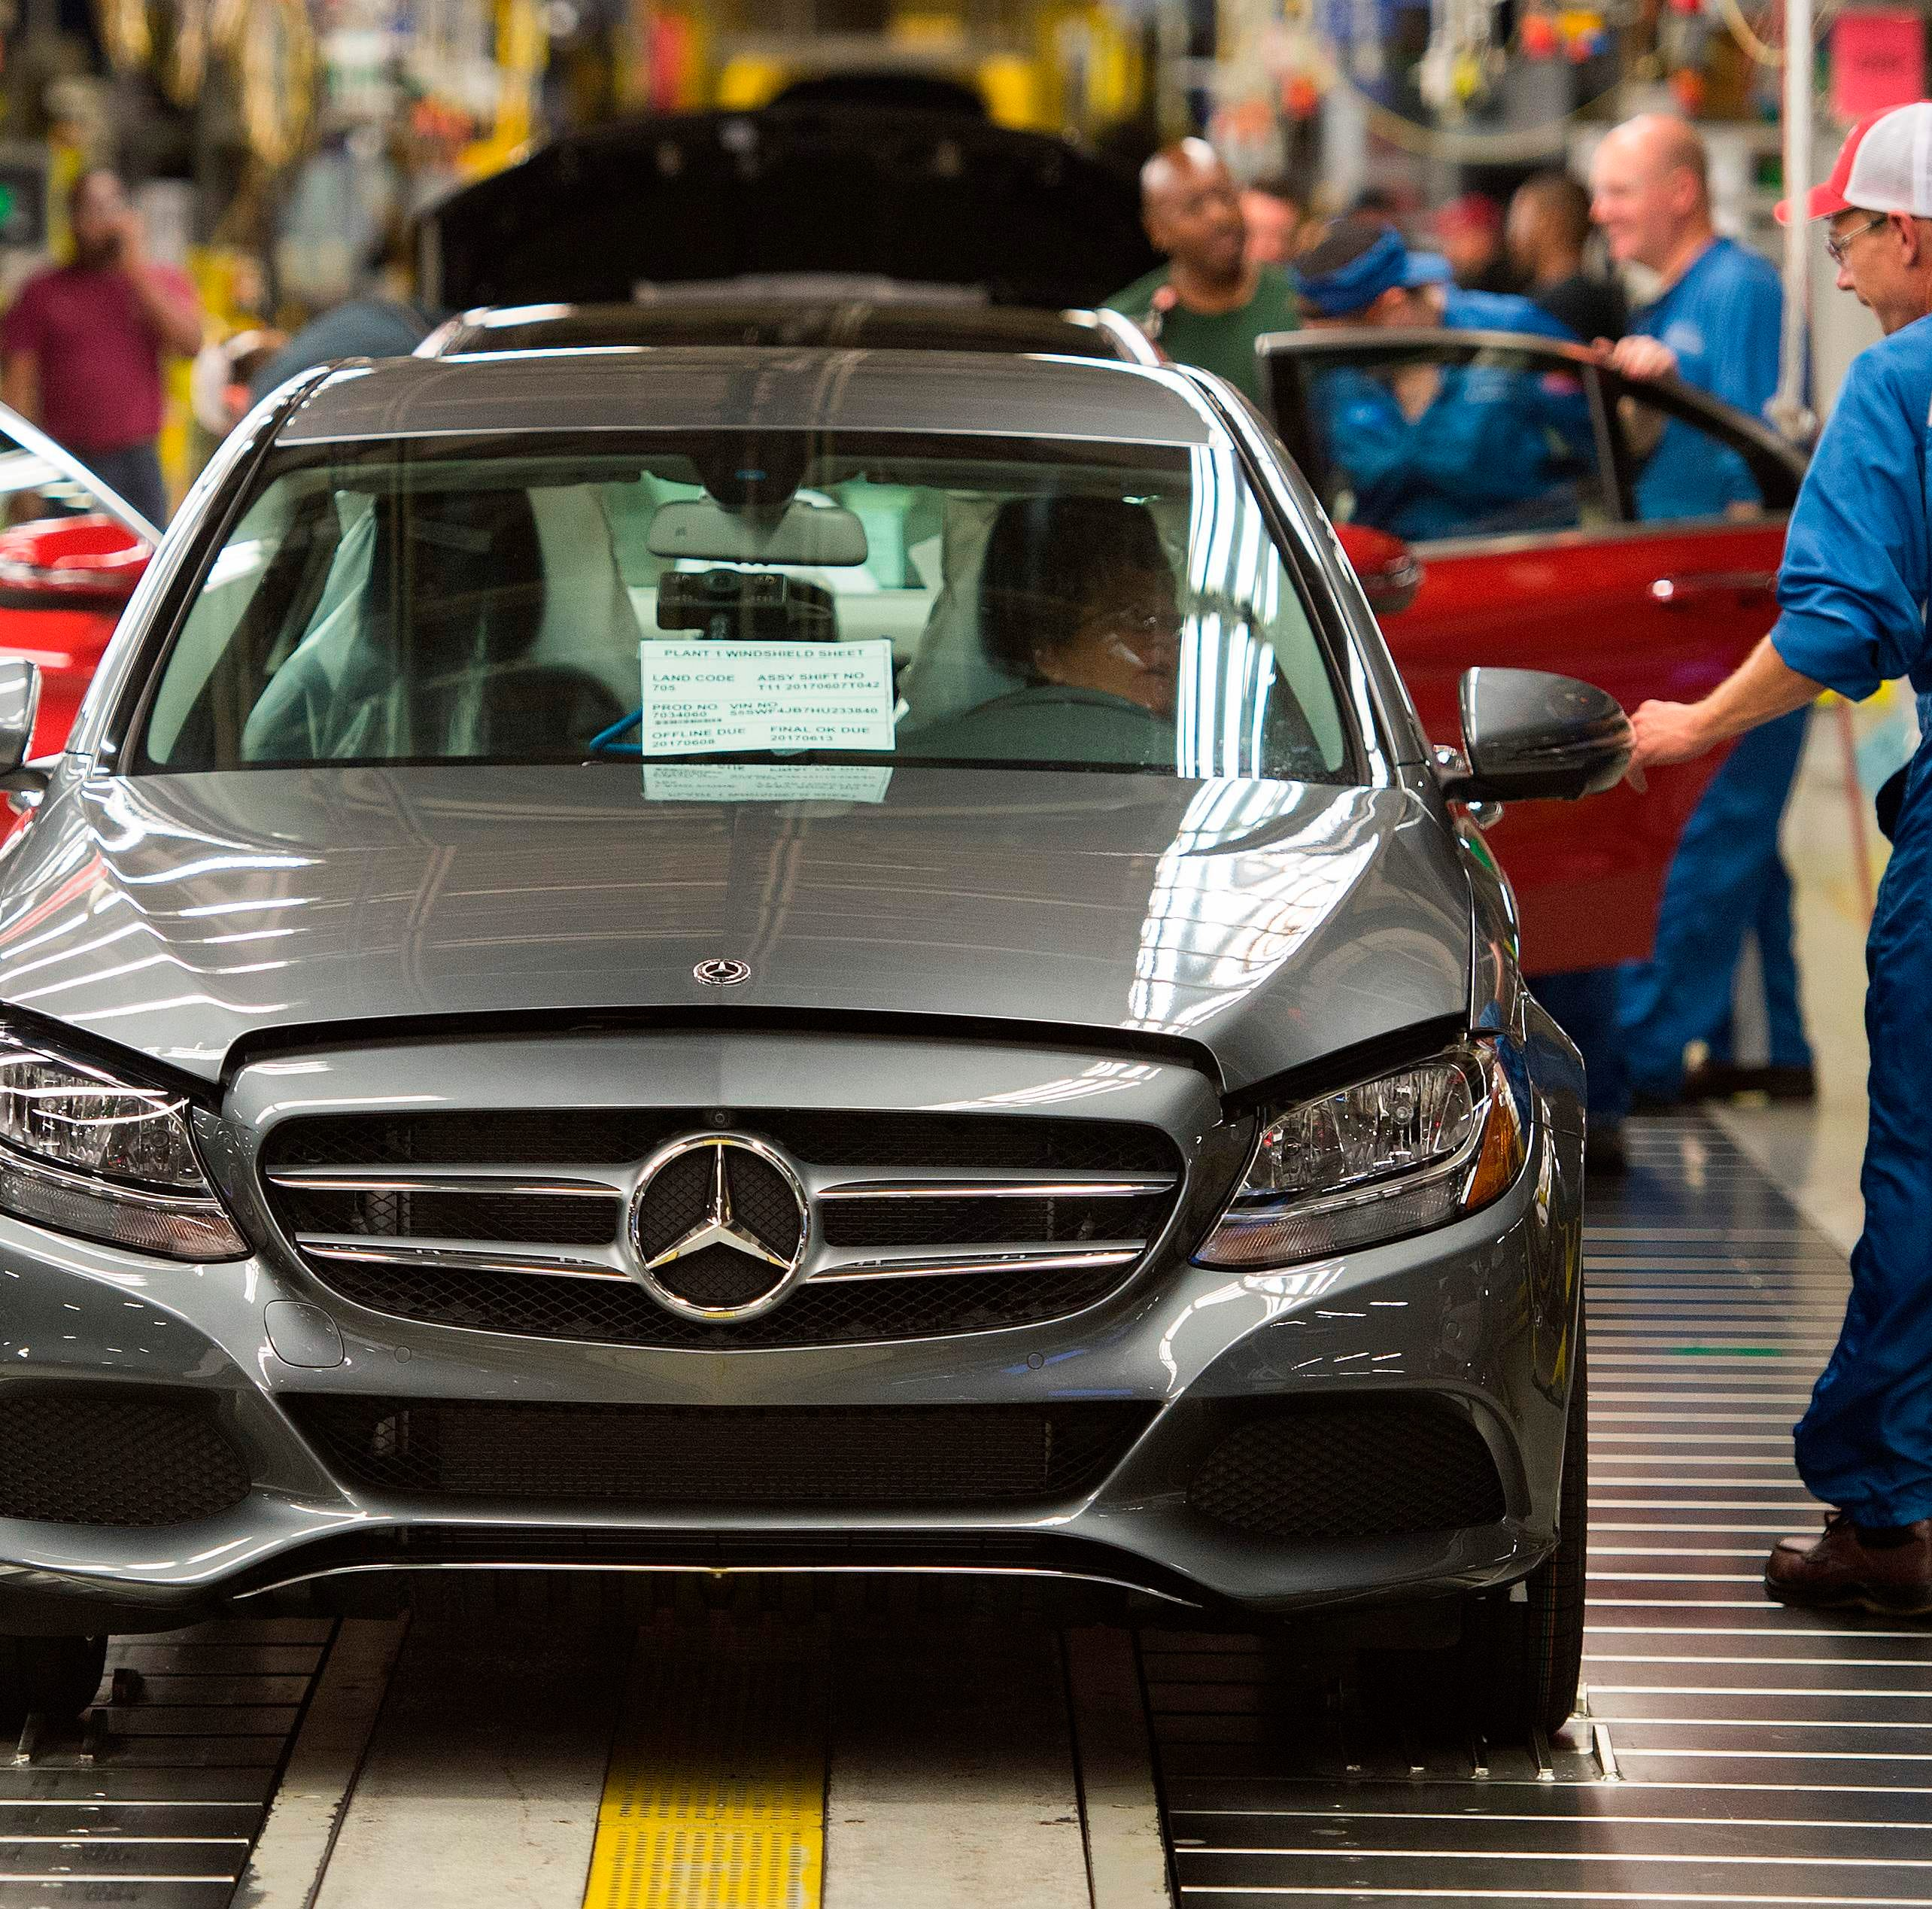 "In this file photo taken on June 8, 2017 Employees inspect Mercedes-Benz C-Class cars at the Mercedes-Benz US International factory in Vance, Alabama. - A US Commerce Department report has concluded that American auto imports threaten national security, setting the stage for possible tariffs by the White House, two people familiar with the matter said February 14, 2019. The investigation, ordered by President Donald Trump in May, is ""positive"" with respect to the central question of whether the imports ""impair"" US national security, said a European auto industry source."